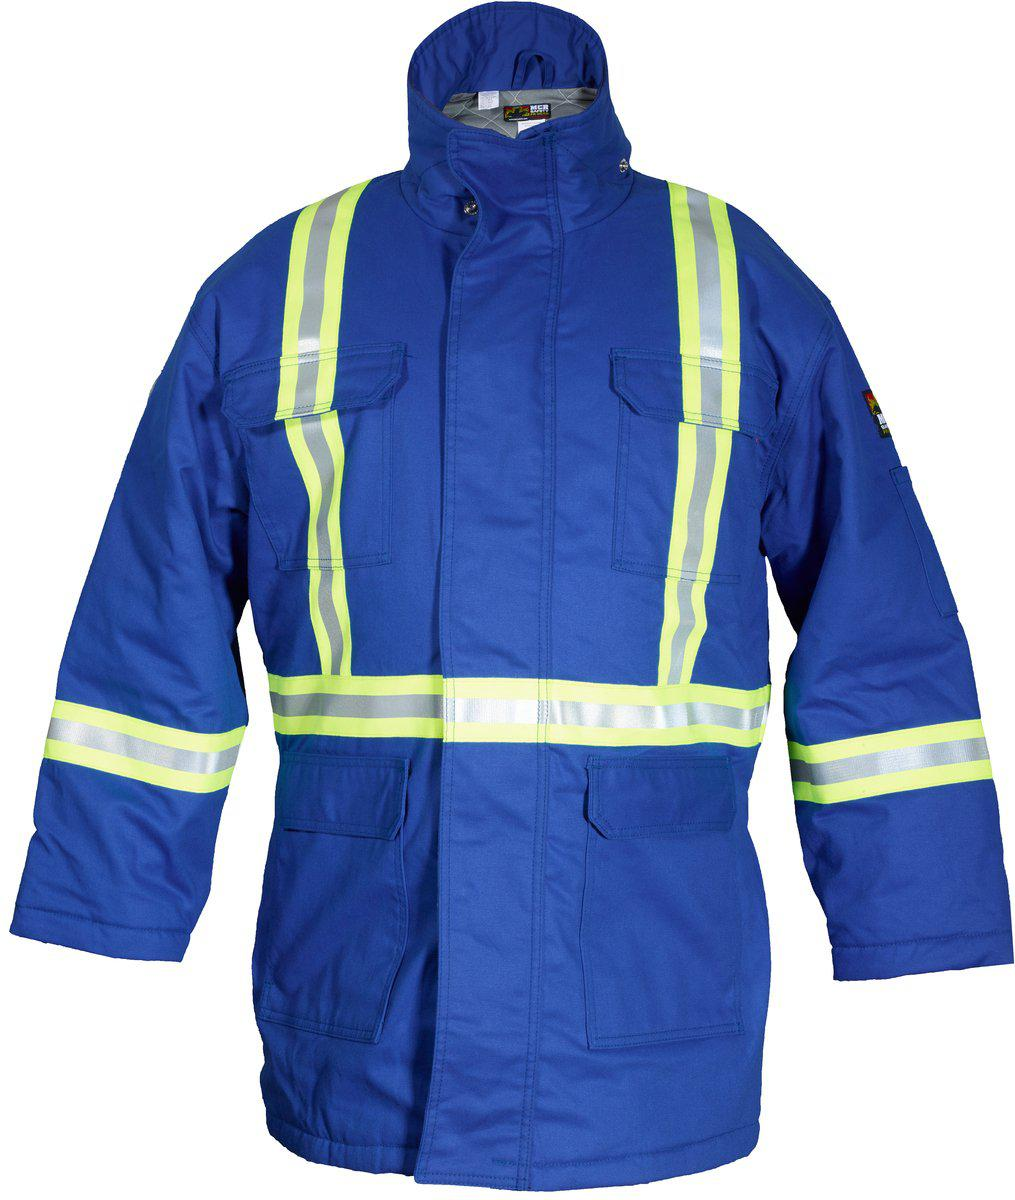 MCR Flame Resistant (FR) Extreme Climate Insulated Parka Modacrylic Quilted Lining with Wind and Vapor Barrier Max Comfort Material FR Reflective Stripes 88% Cotton 12% Nylon Royal Blue - 1EA